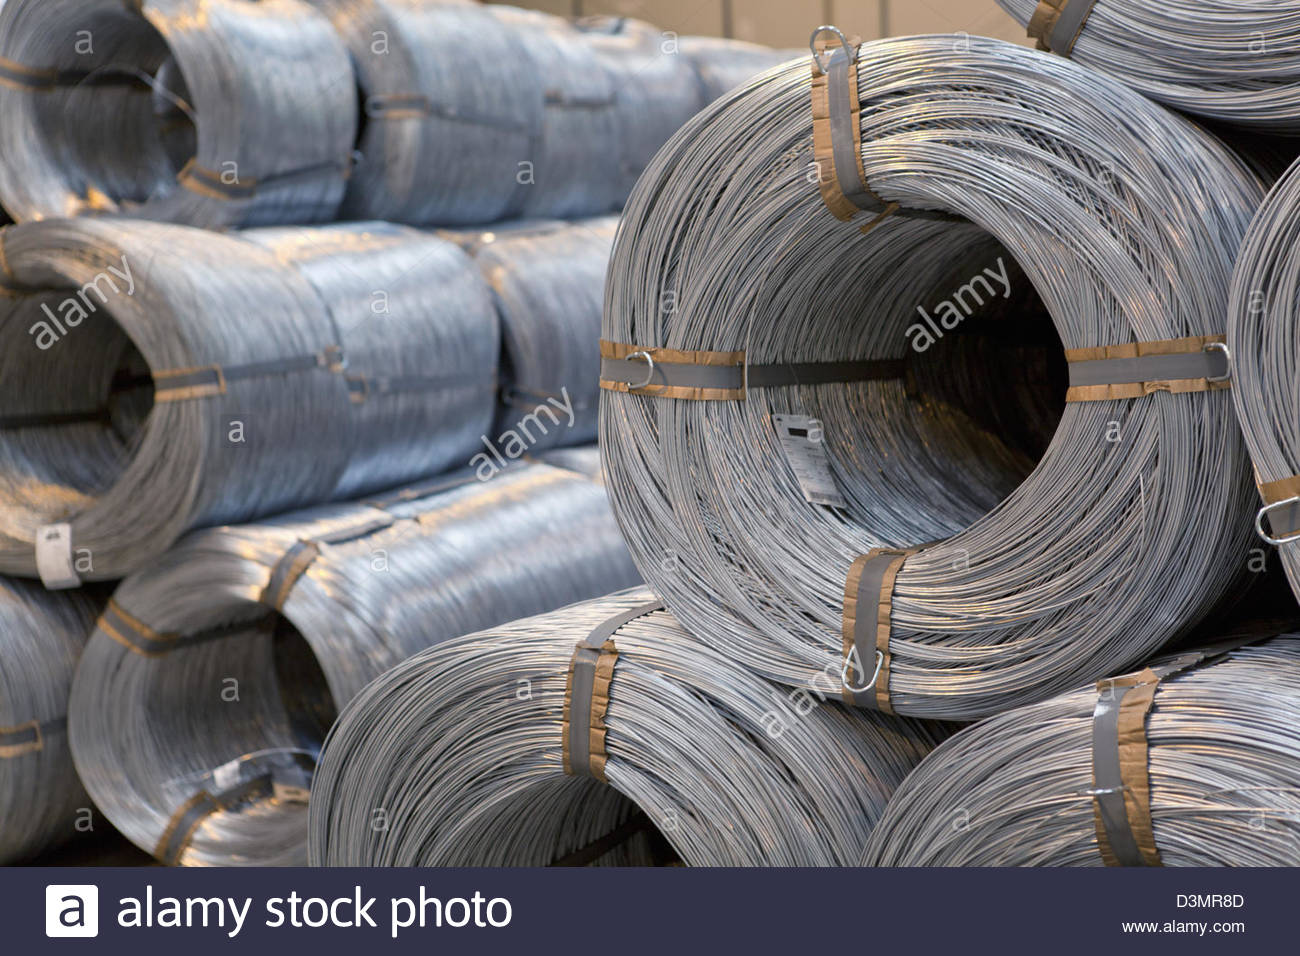 Wire Rolls Stock Photos & Wire Rolls Stock Images - Alamy